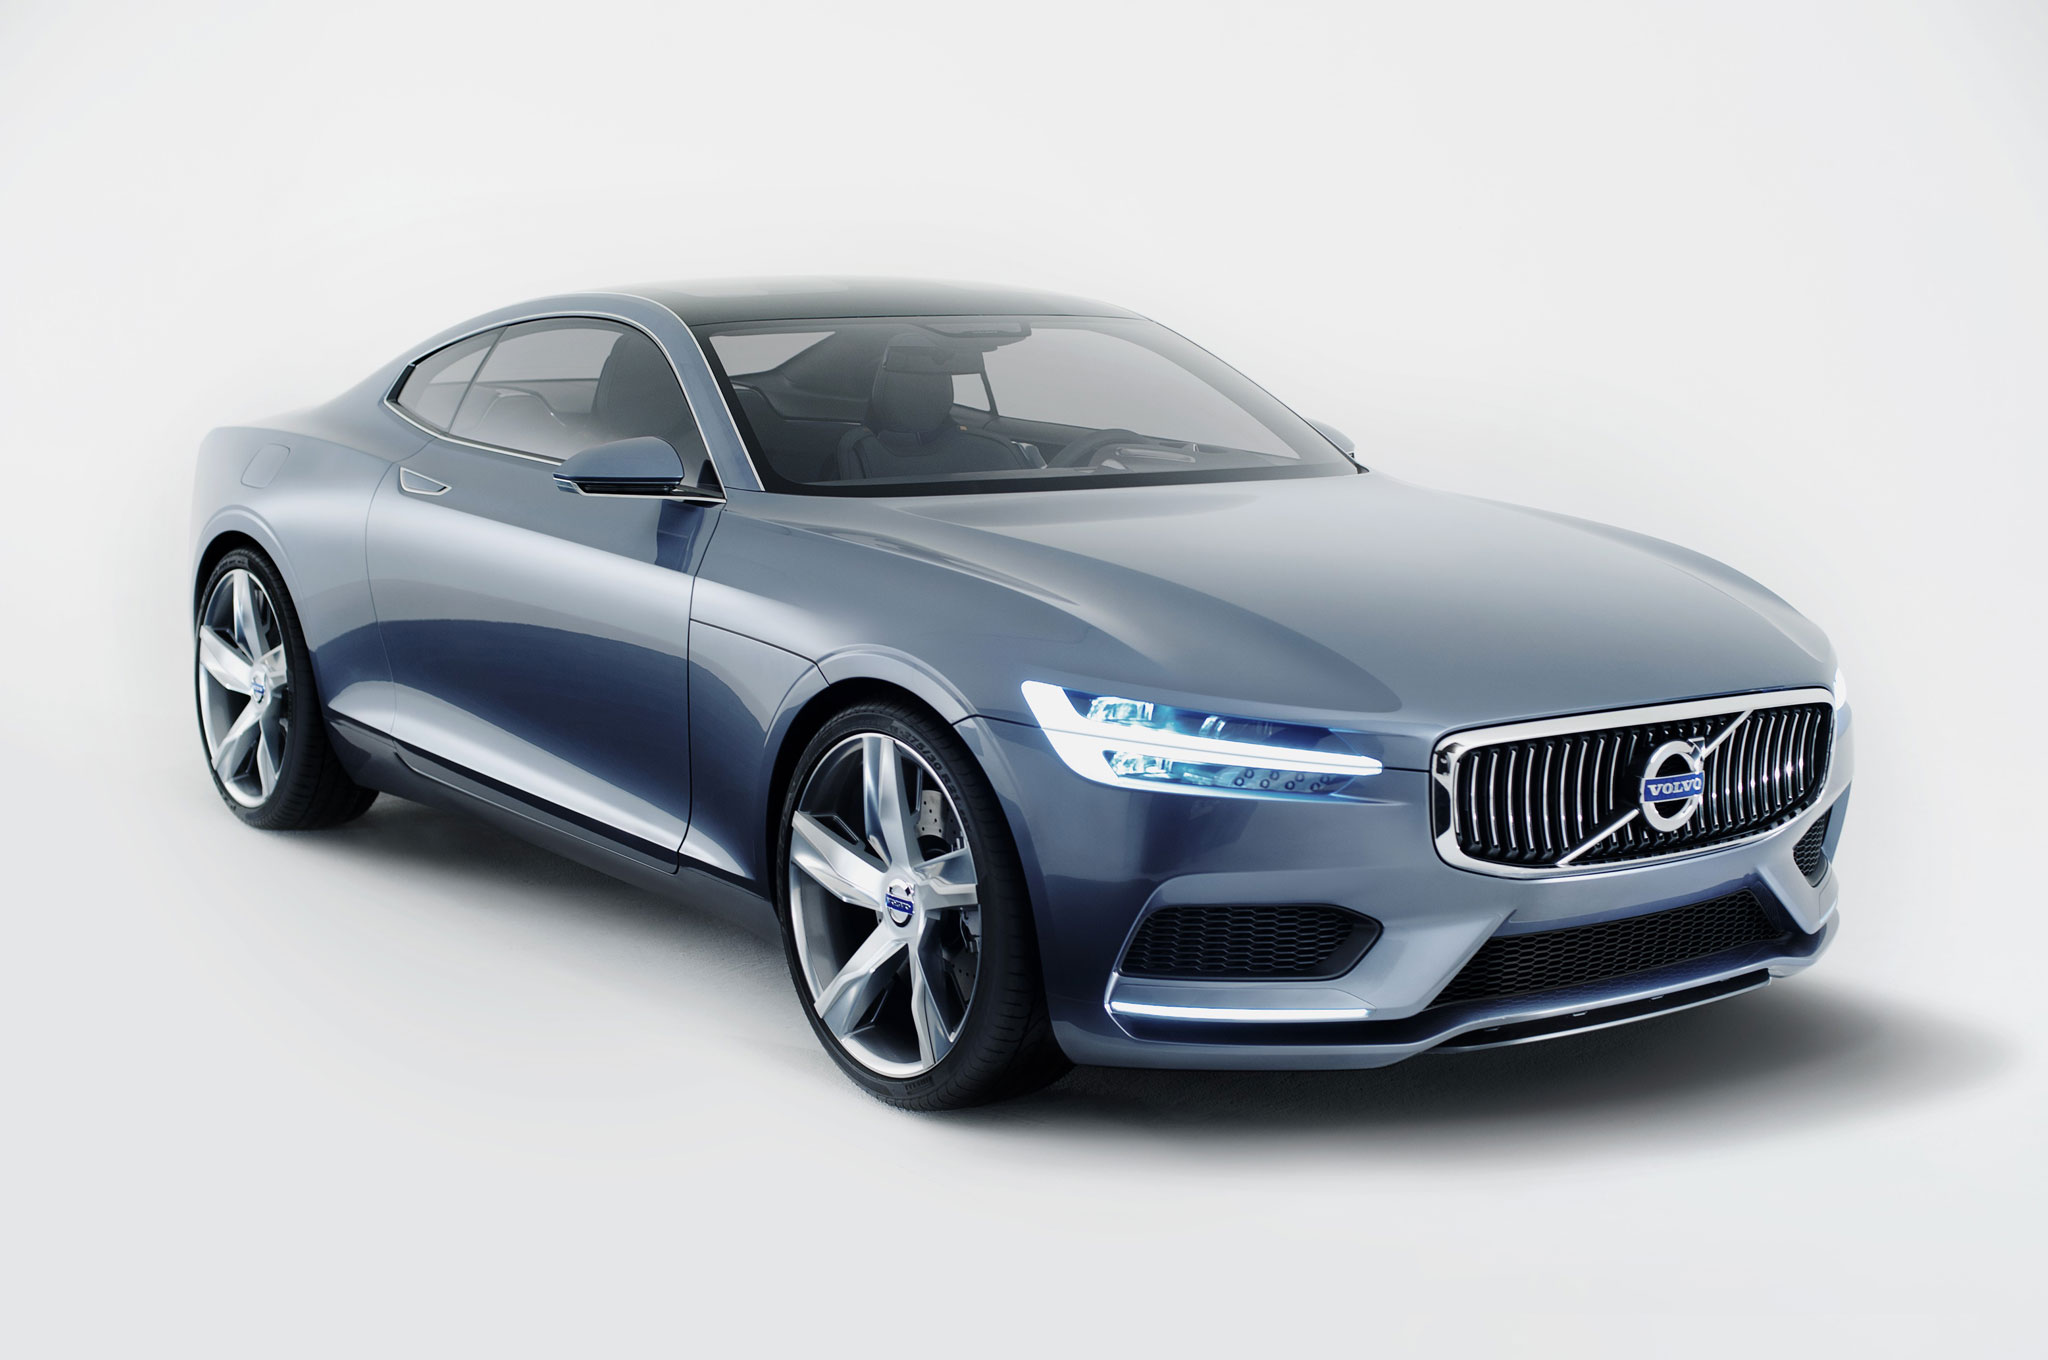 Volvo Concept Coupe Front Right Side View